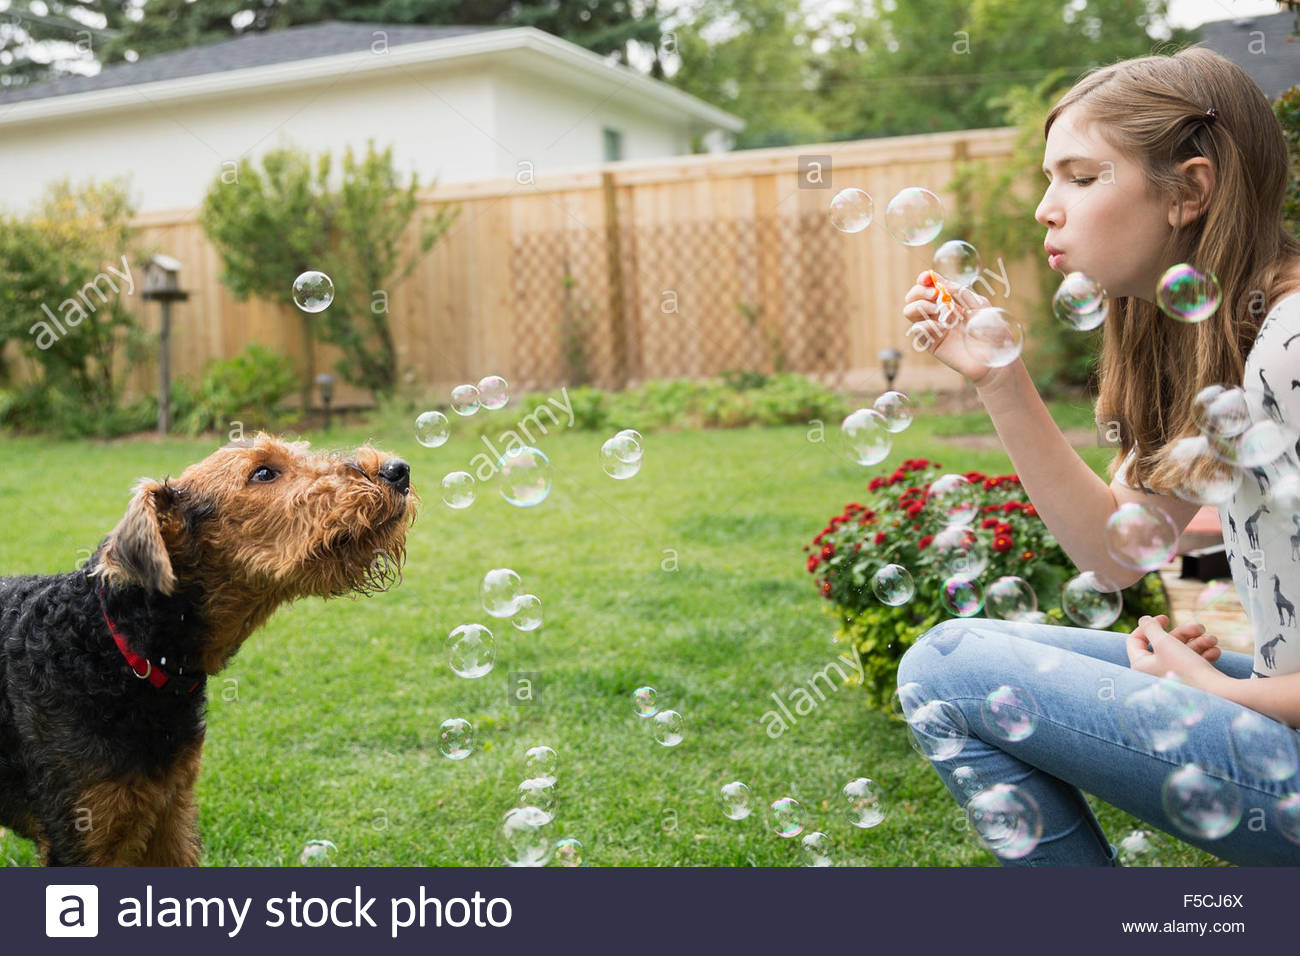 Chien curieux watching girl blowing bubbles in backyard Photo Stock